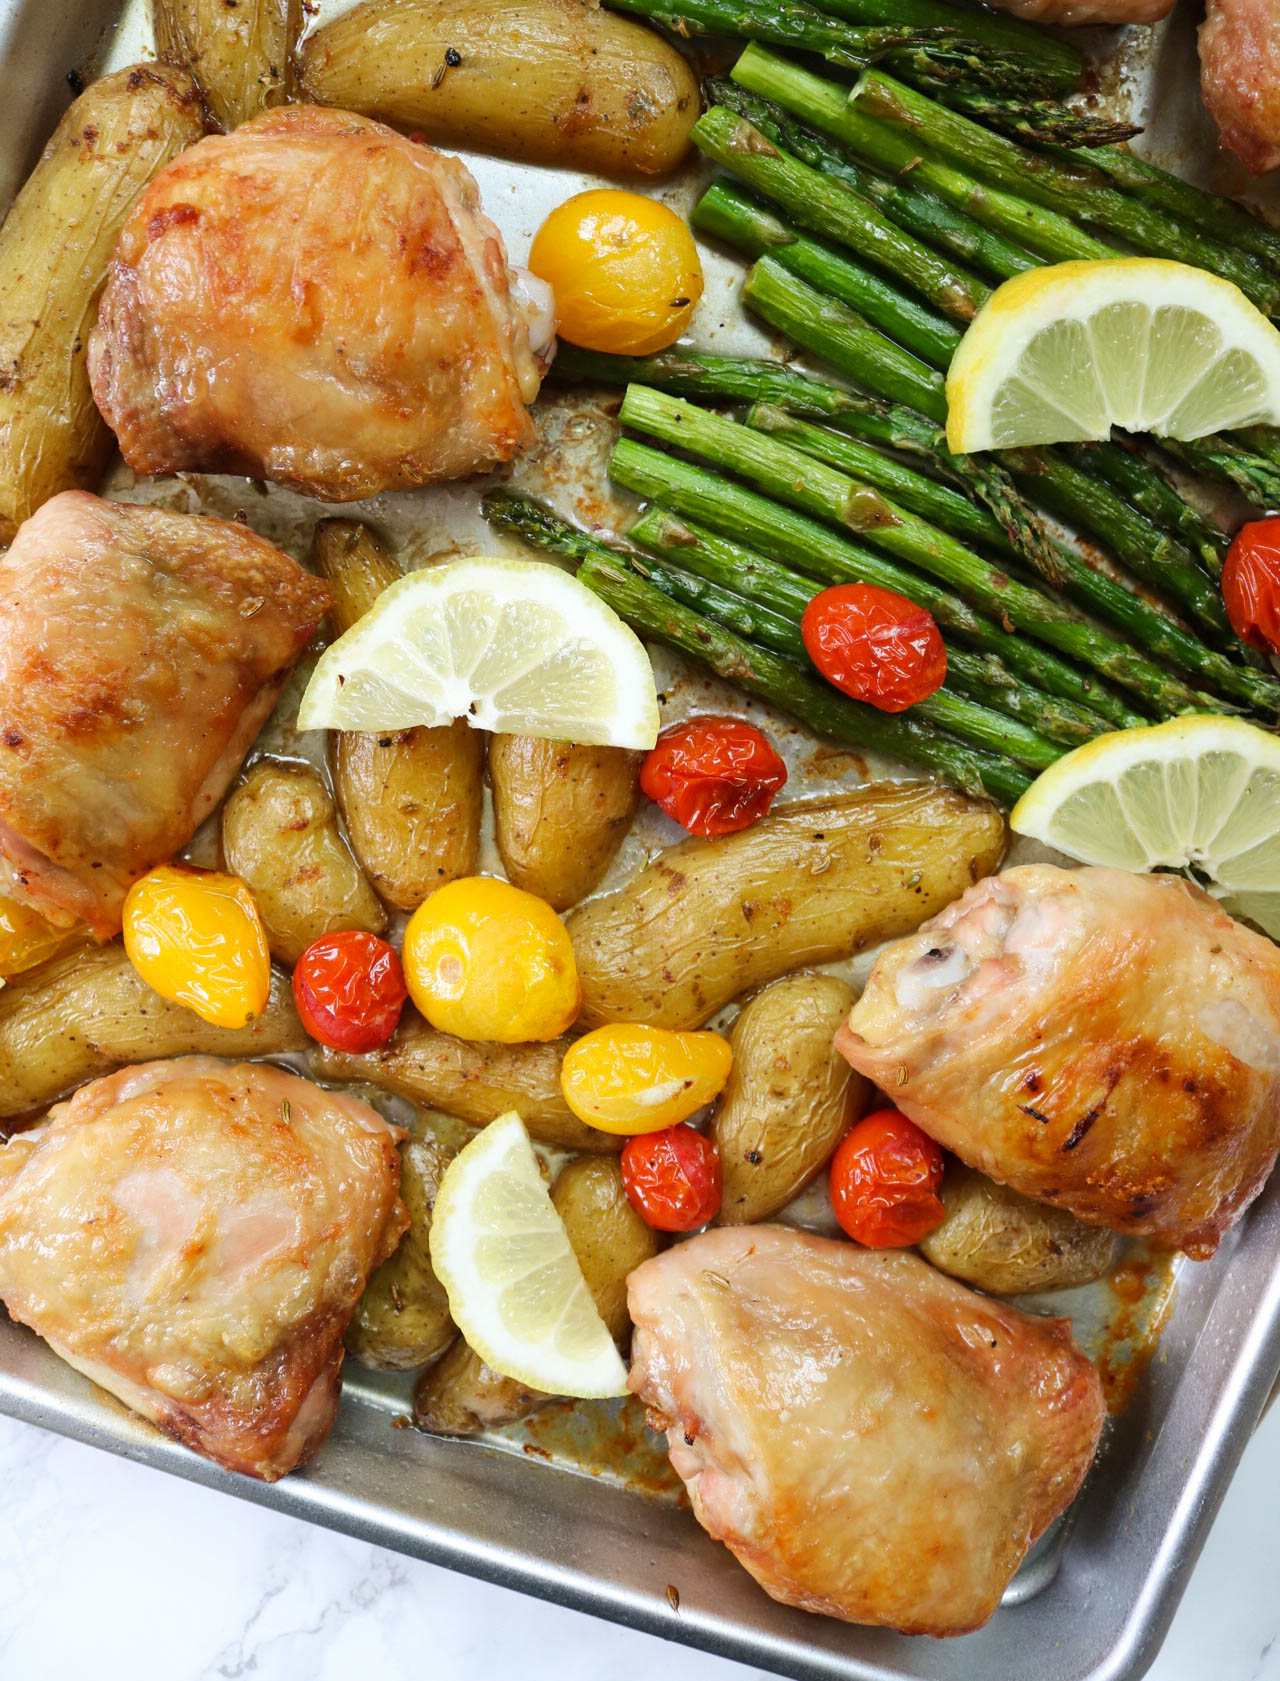 Sheet Pan Chicken with asparagus - Recipe by: From Pasta to Paleo Add arugula for a salad